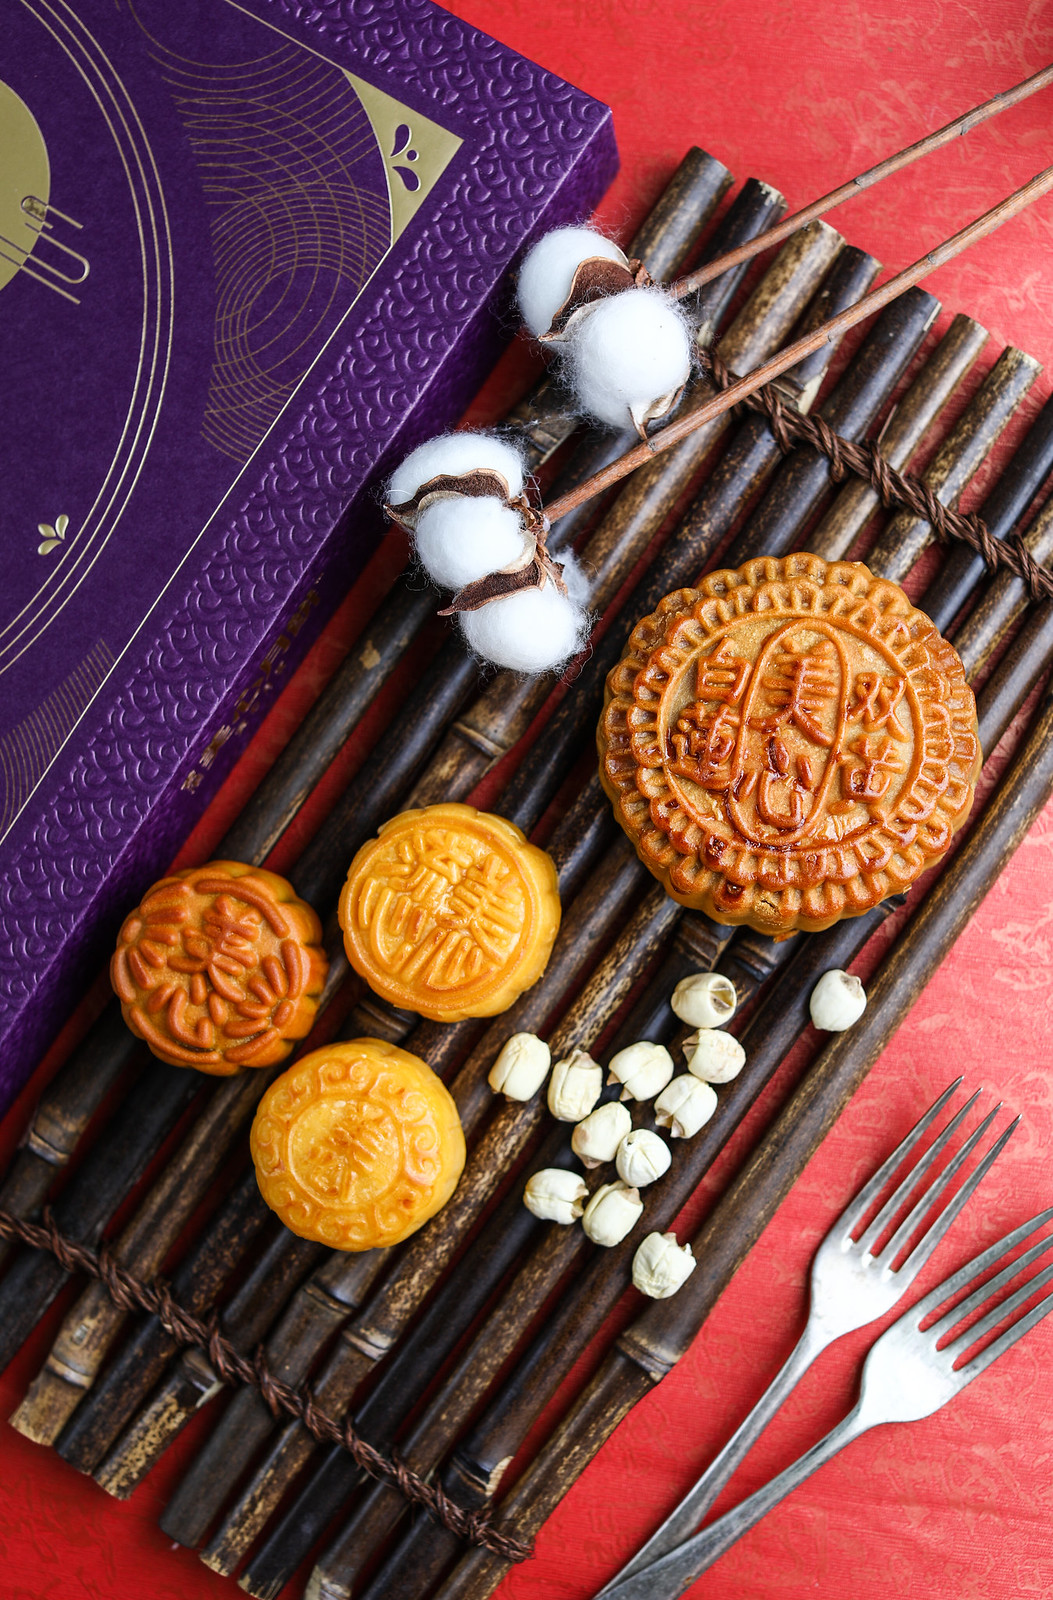 Hong Kong Mei-Xin Mooncakes: DelightfulMoon